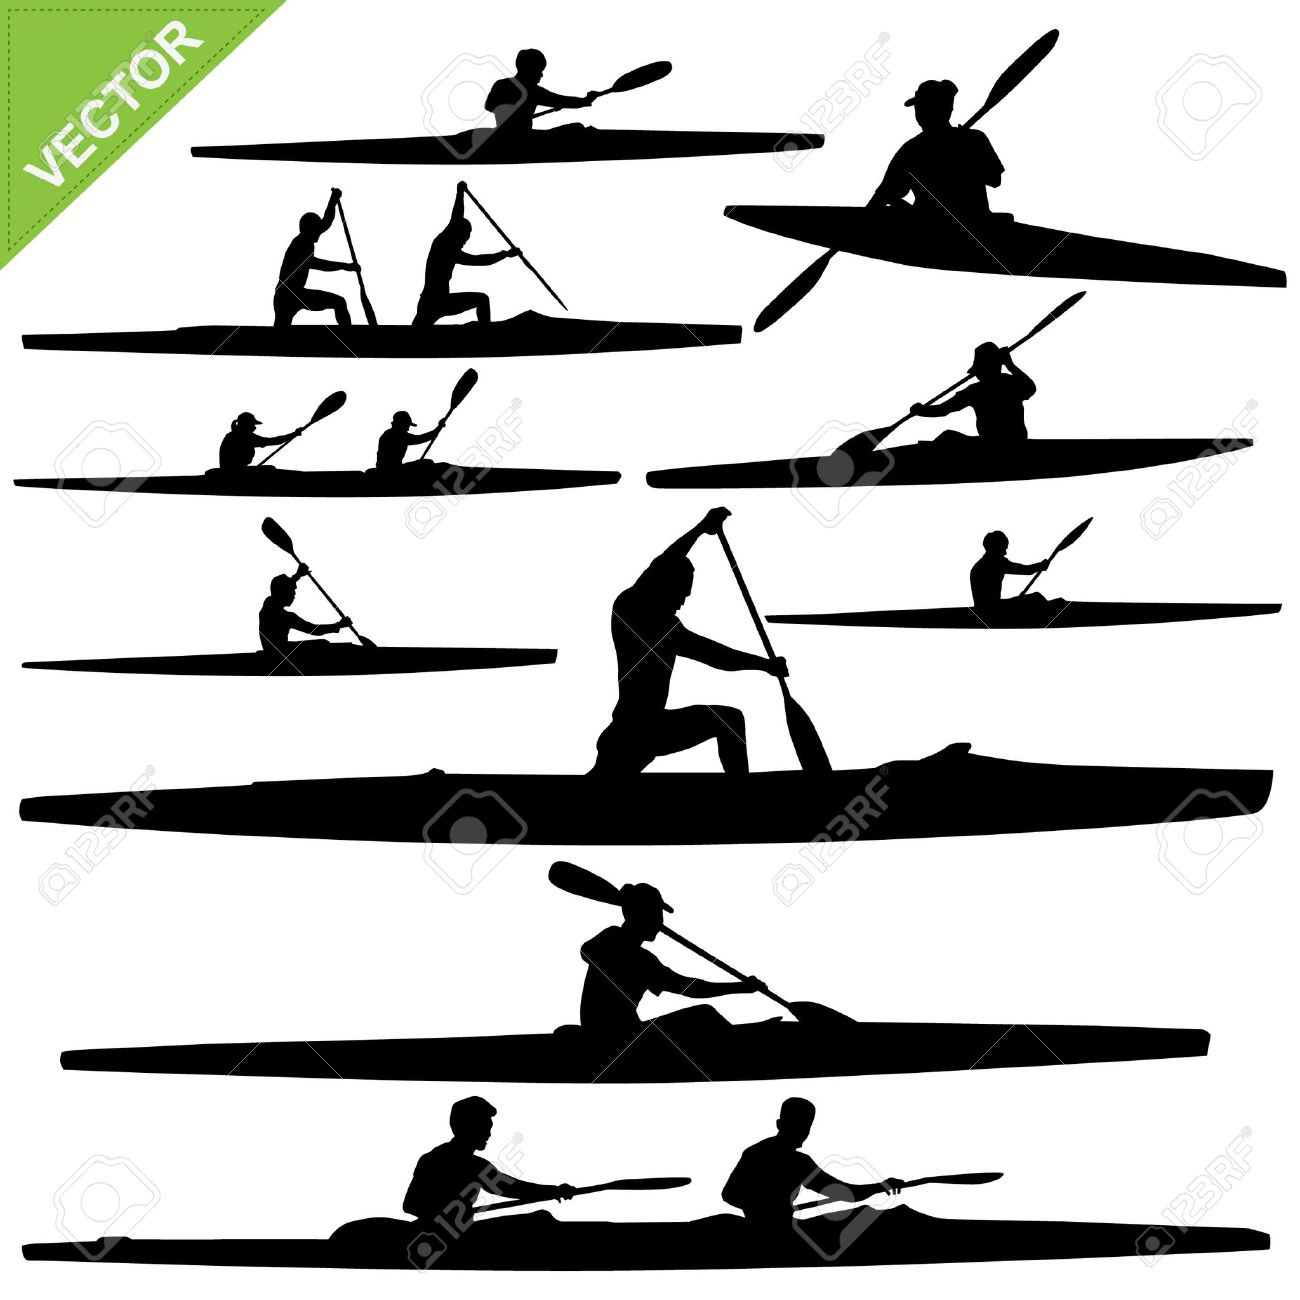 paddle silhouette clipart clipground